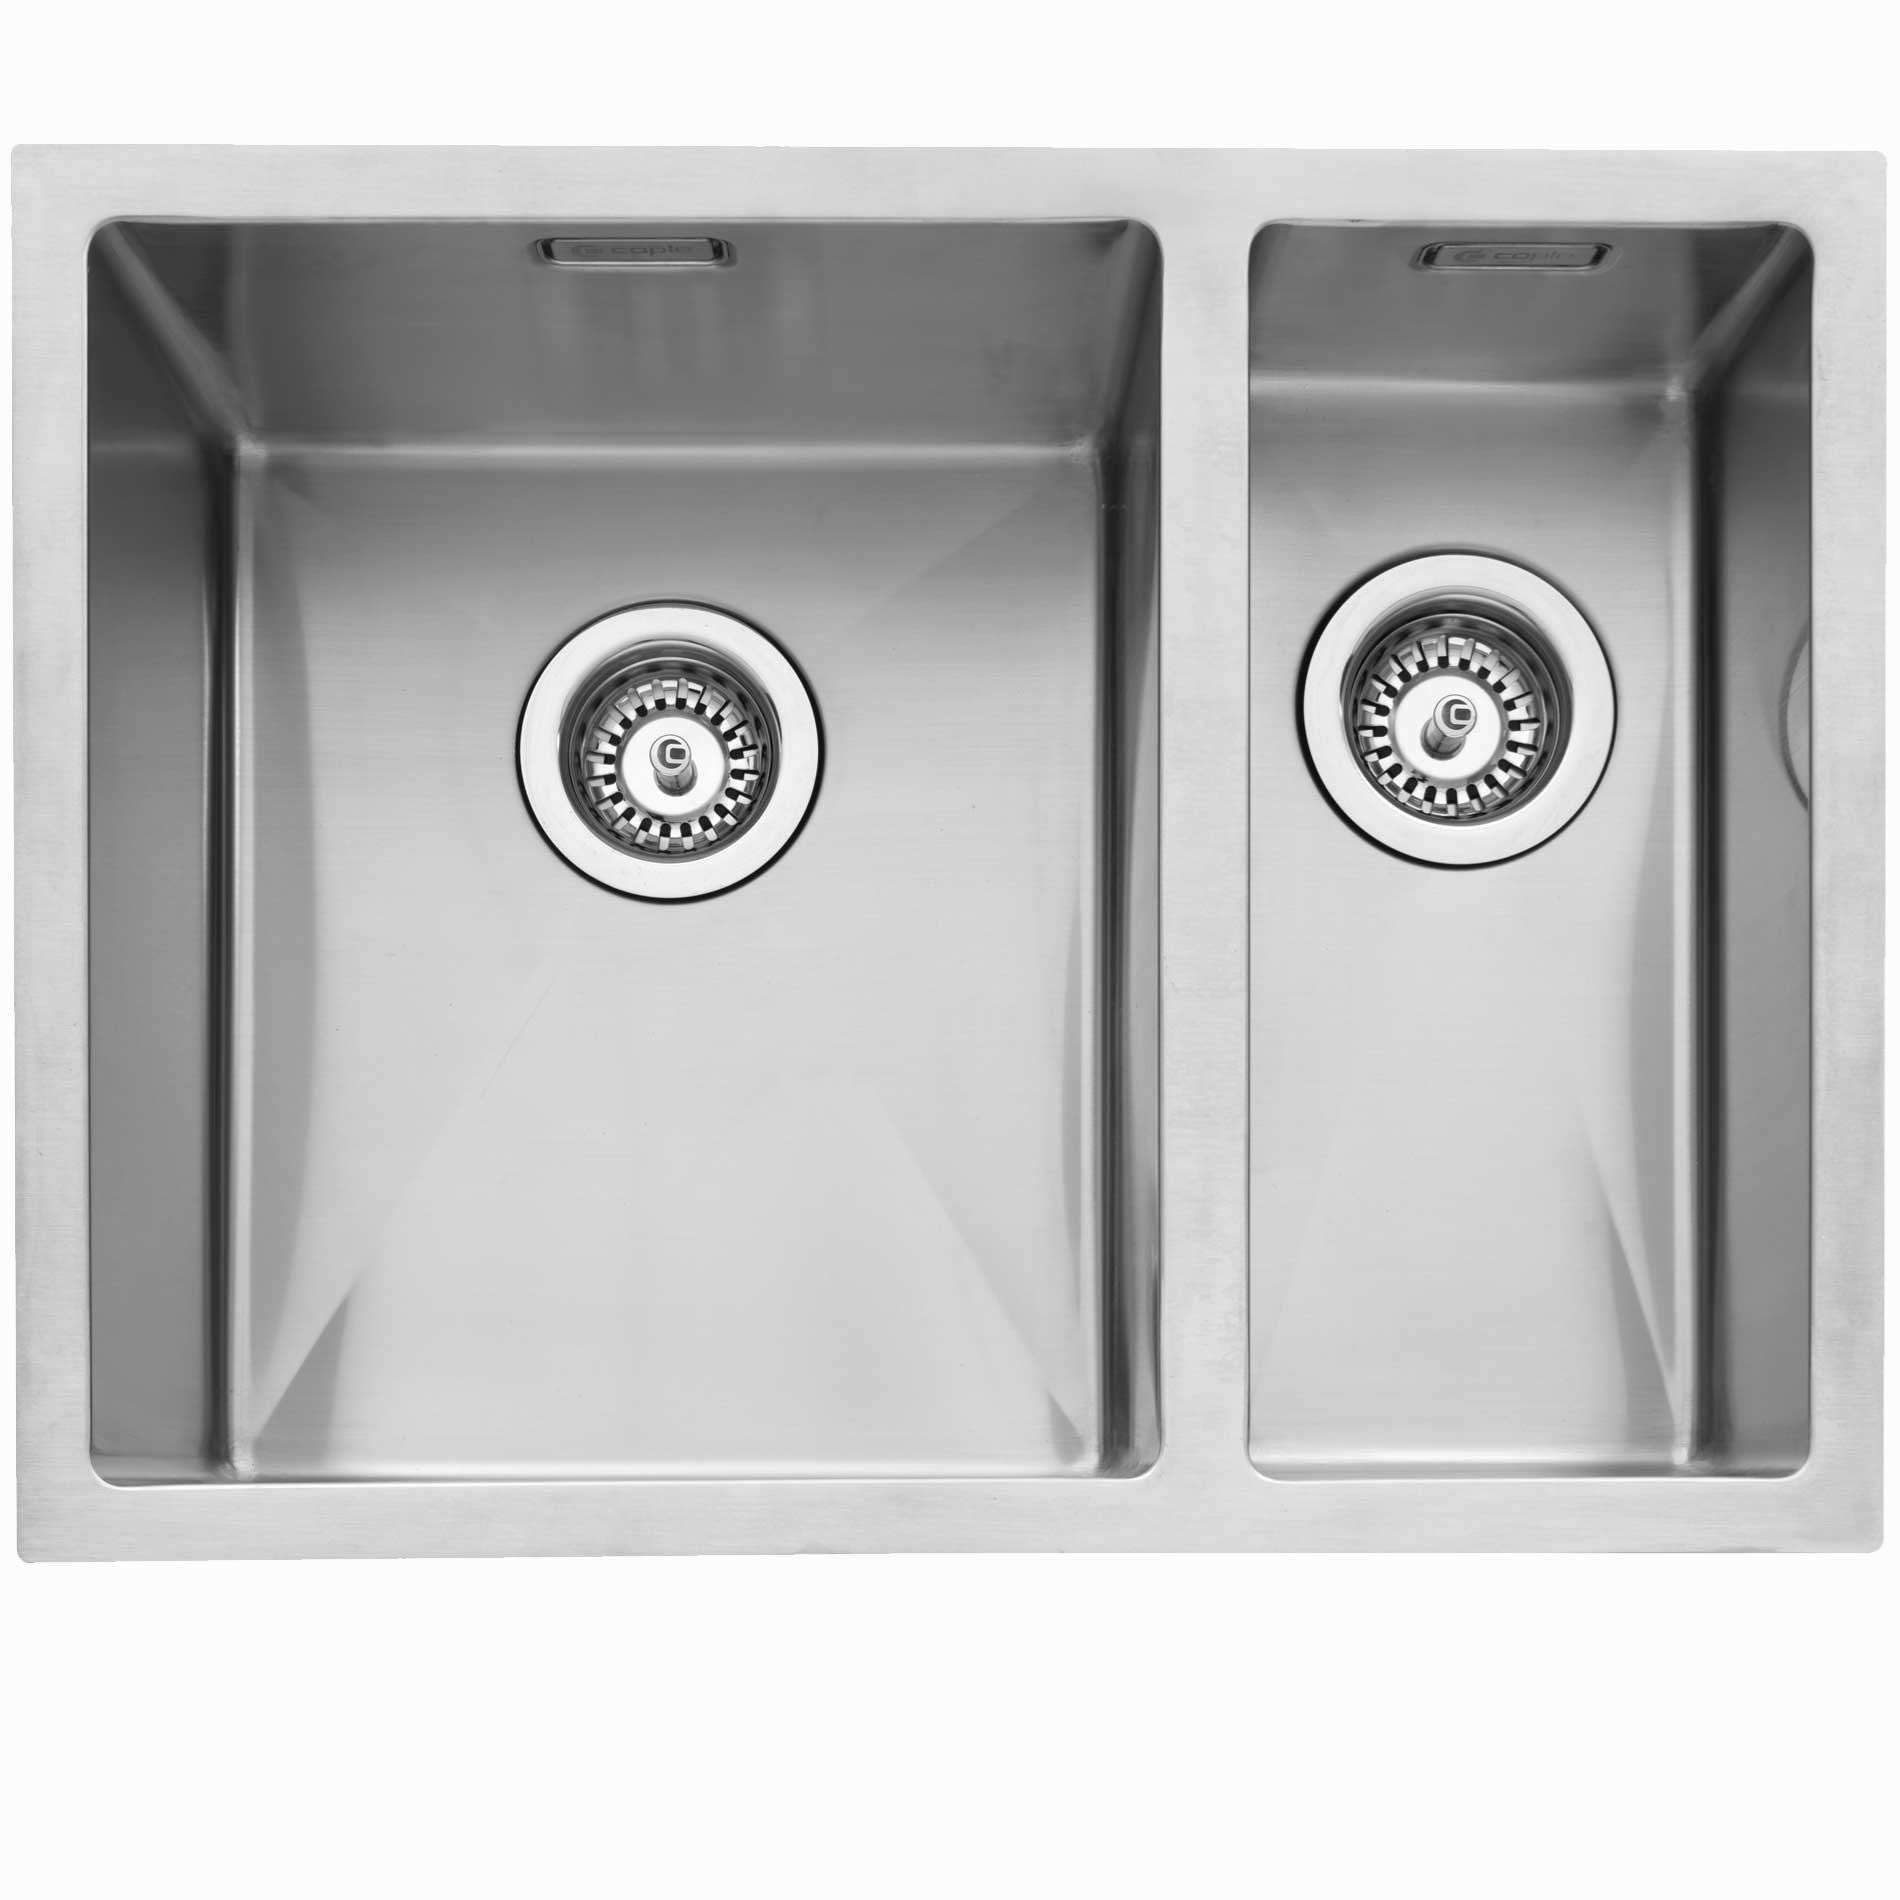 ... Stainless Steel Sink And Washington Tap Pack - Kitchen Sinks & Taps